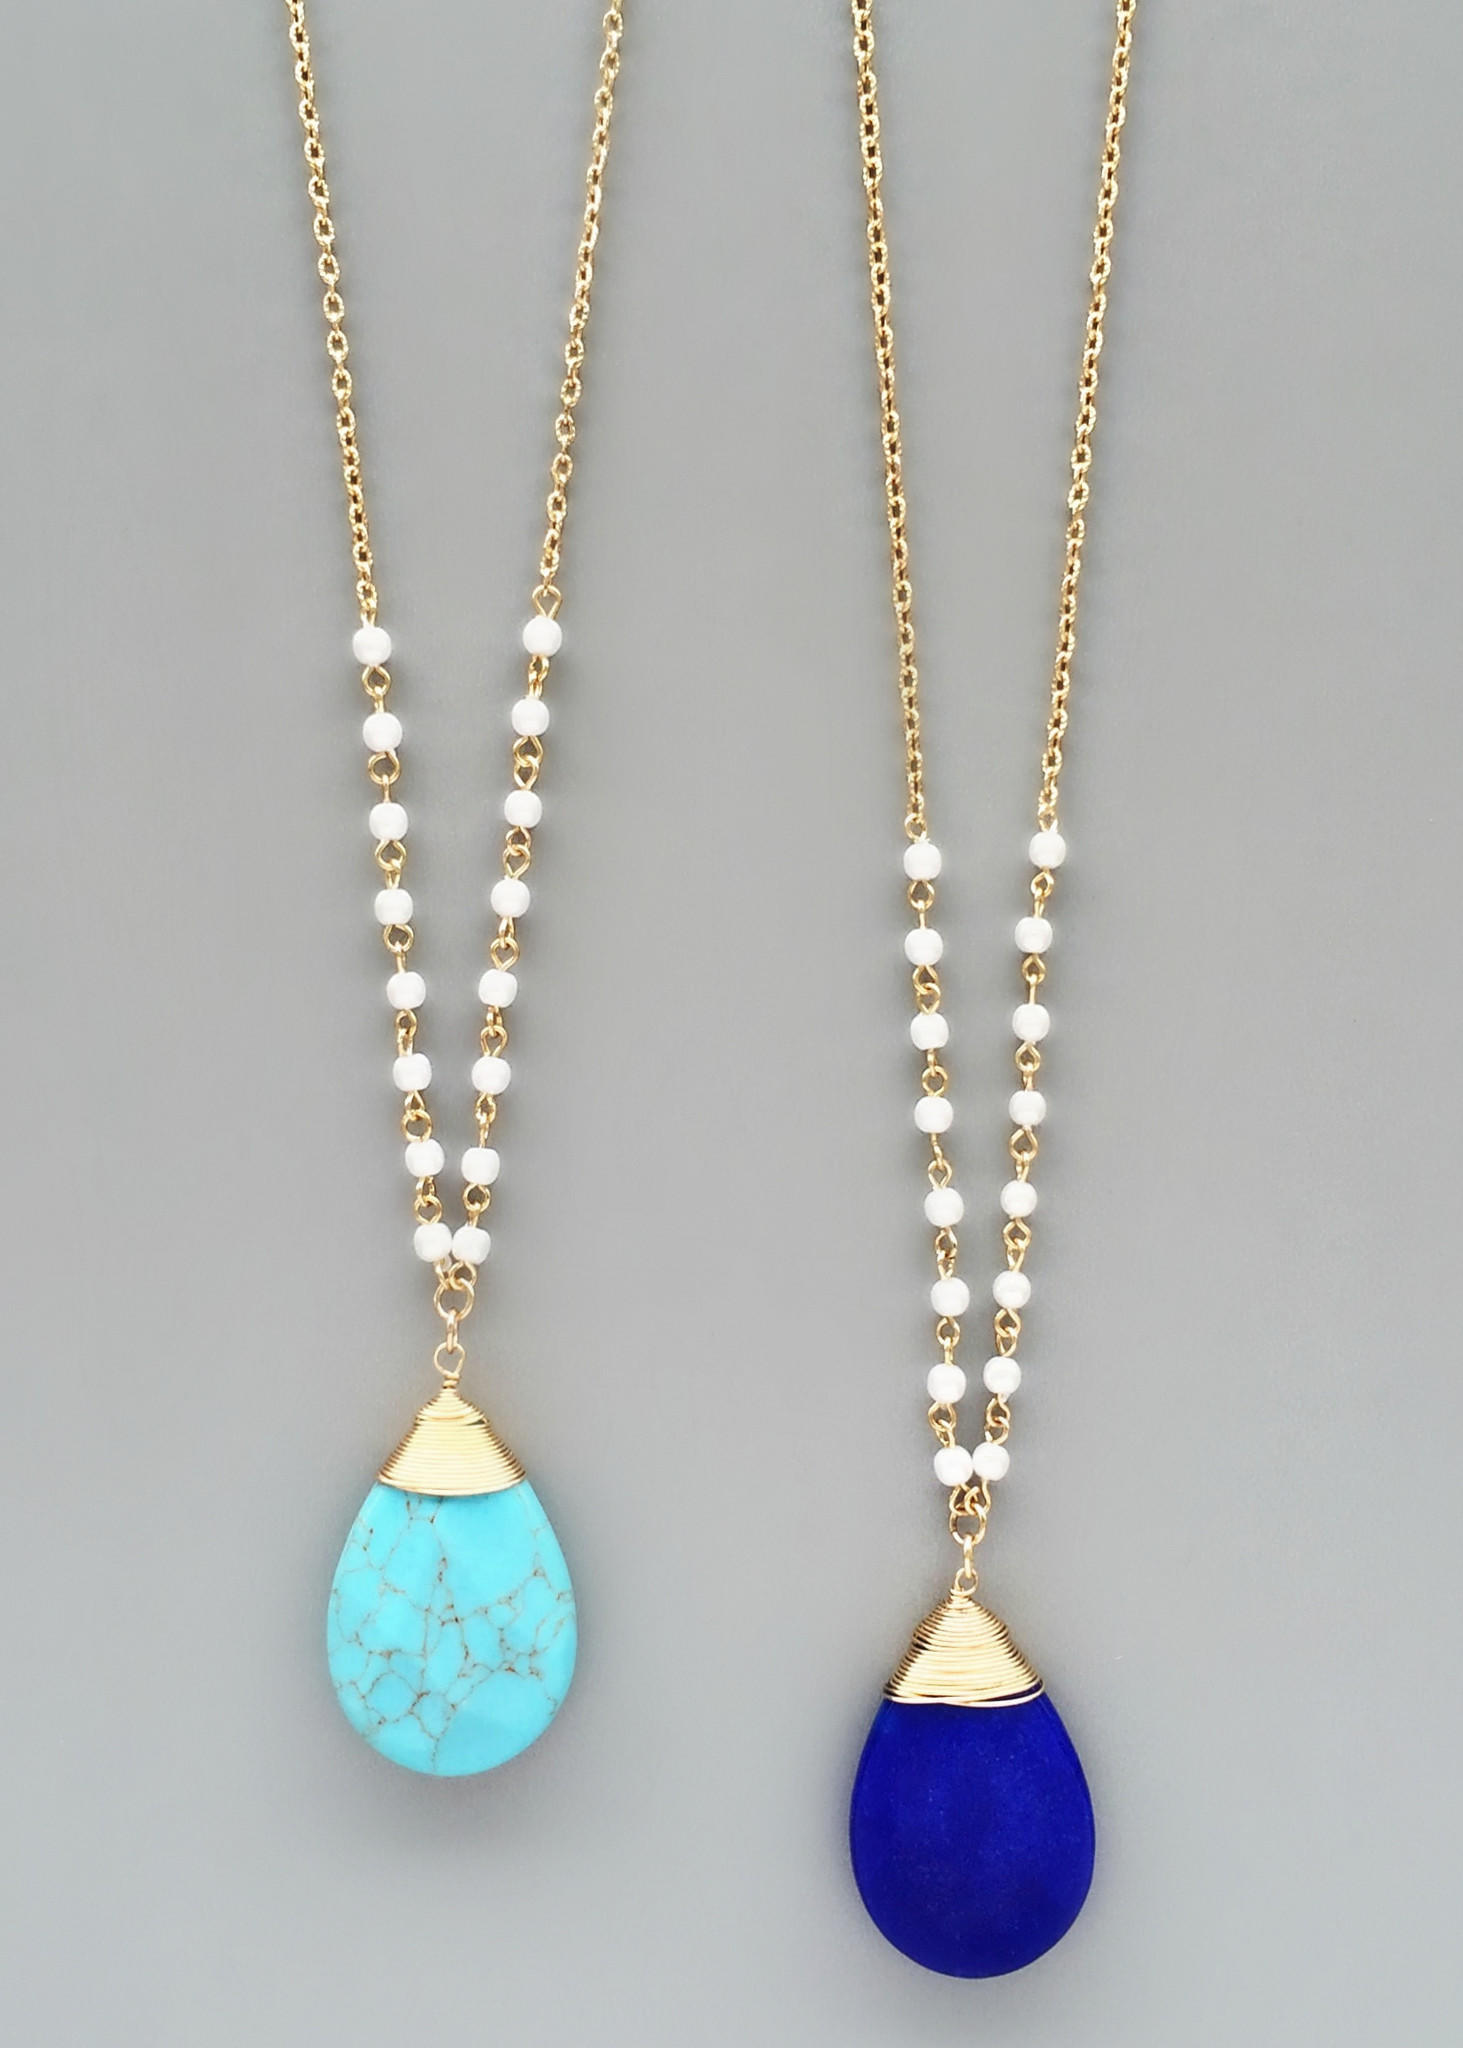 Pearl stone necklaces turquoise or from pree brulee for Who sells lizzy james jewelry